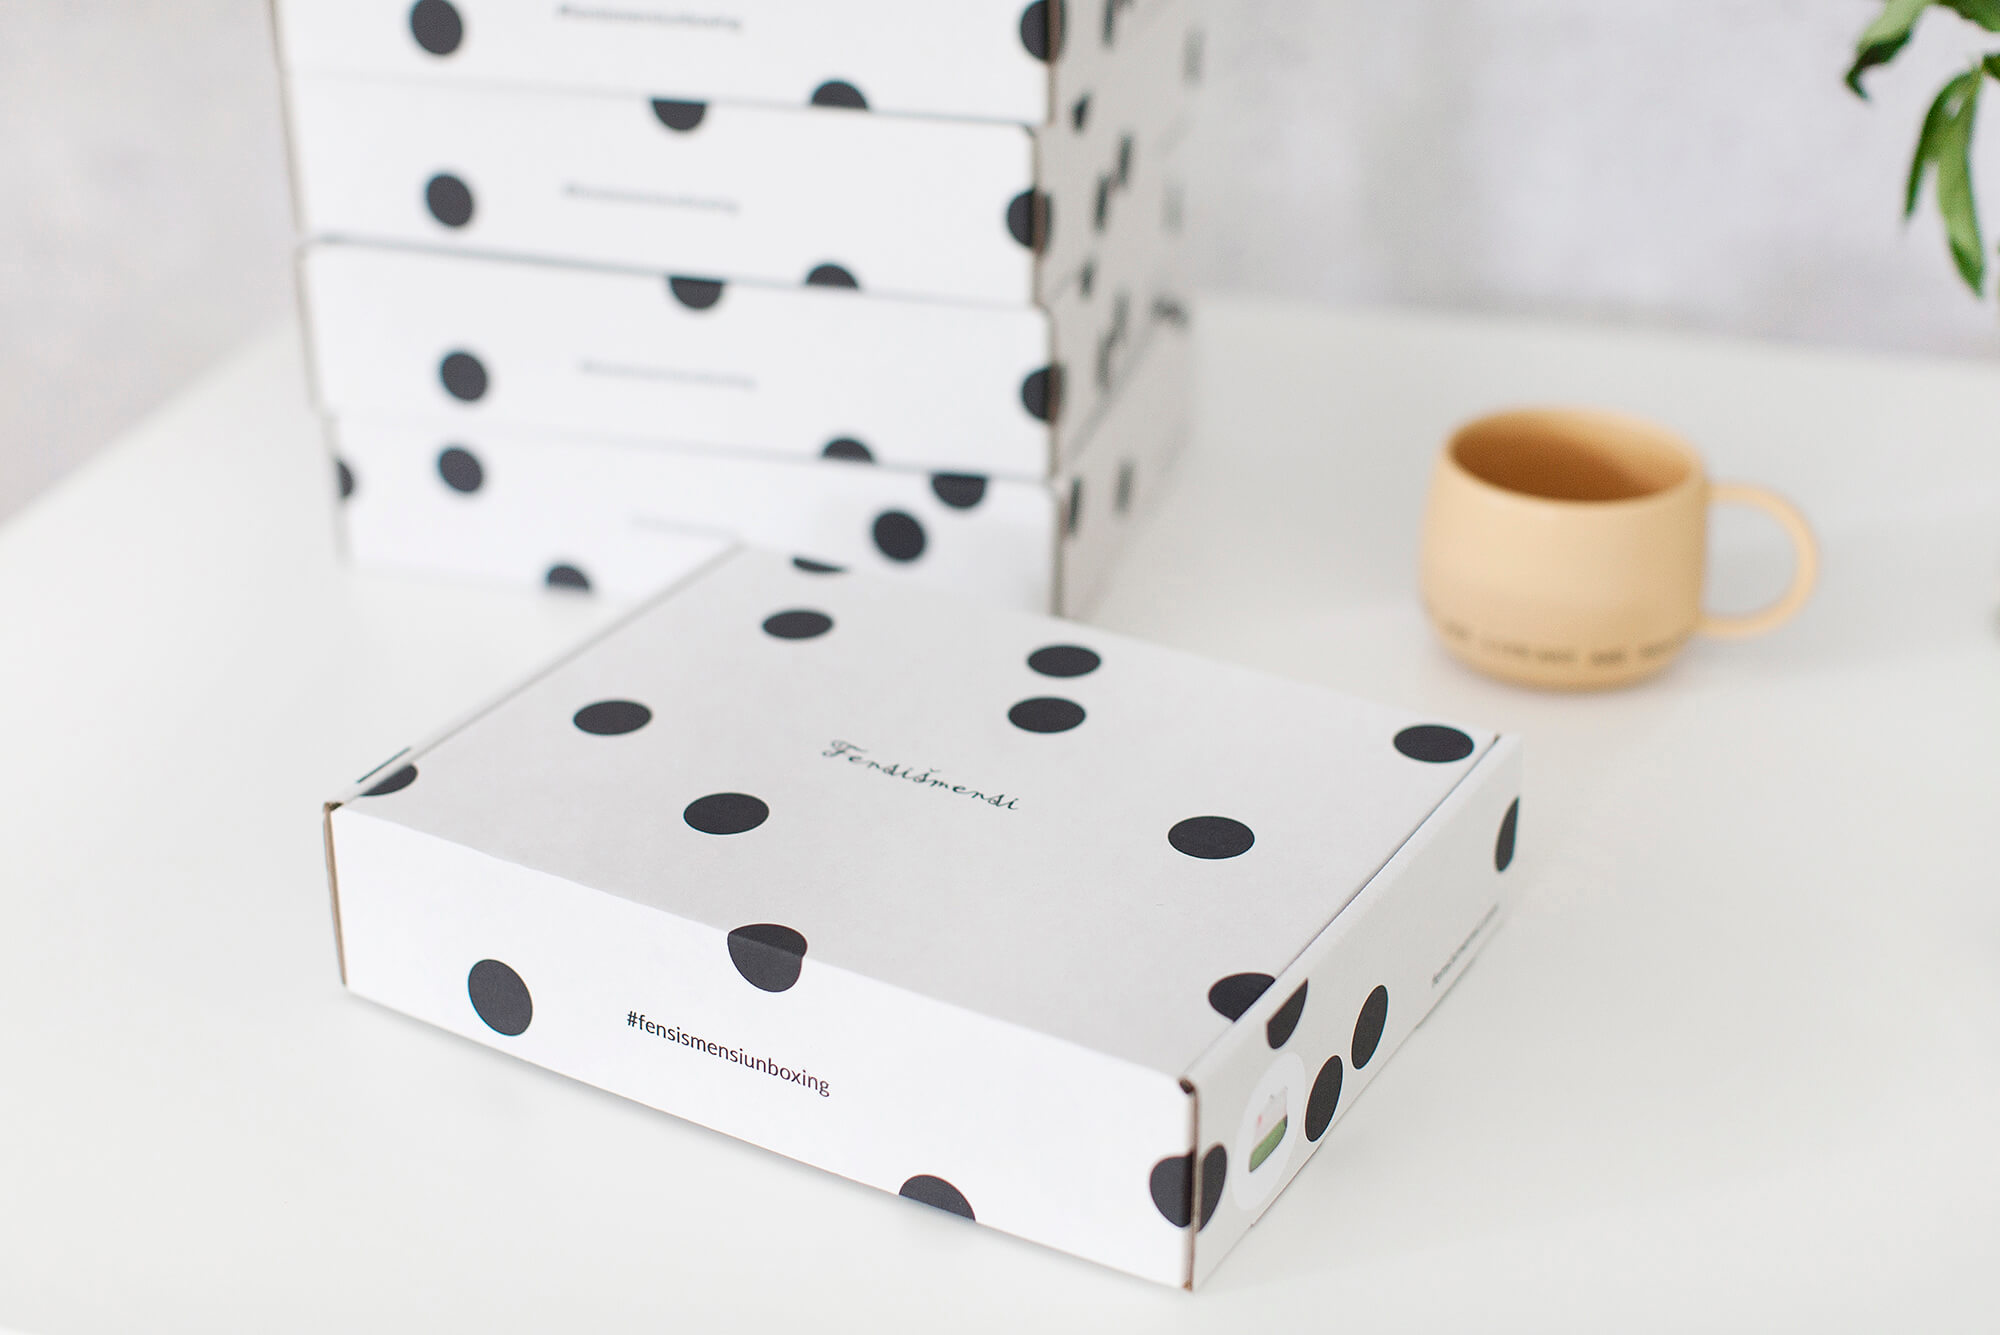 fensimensi packaging project